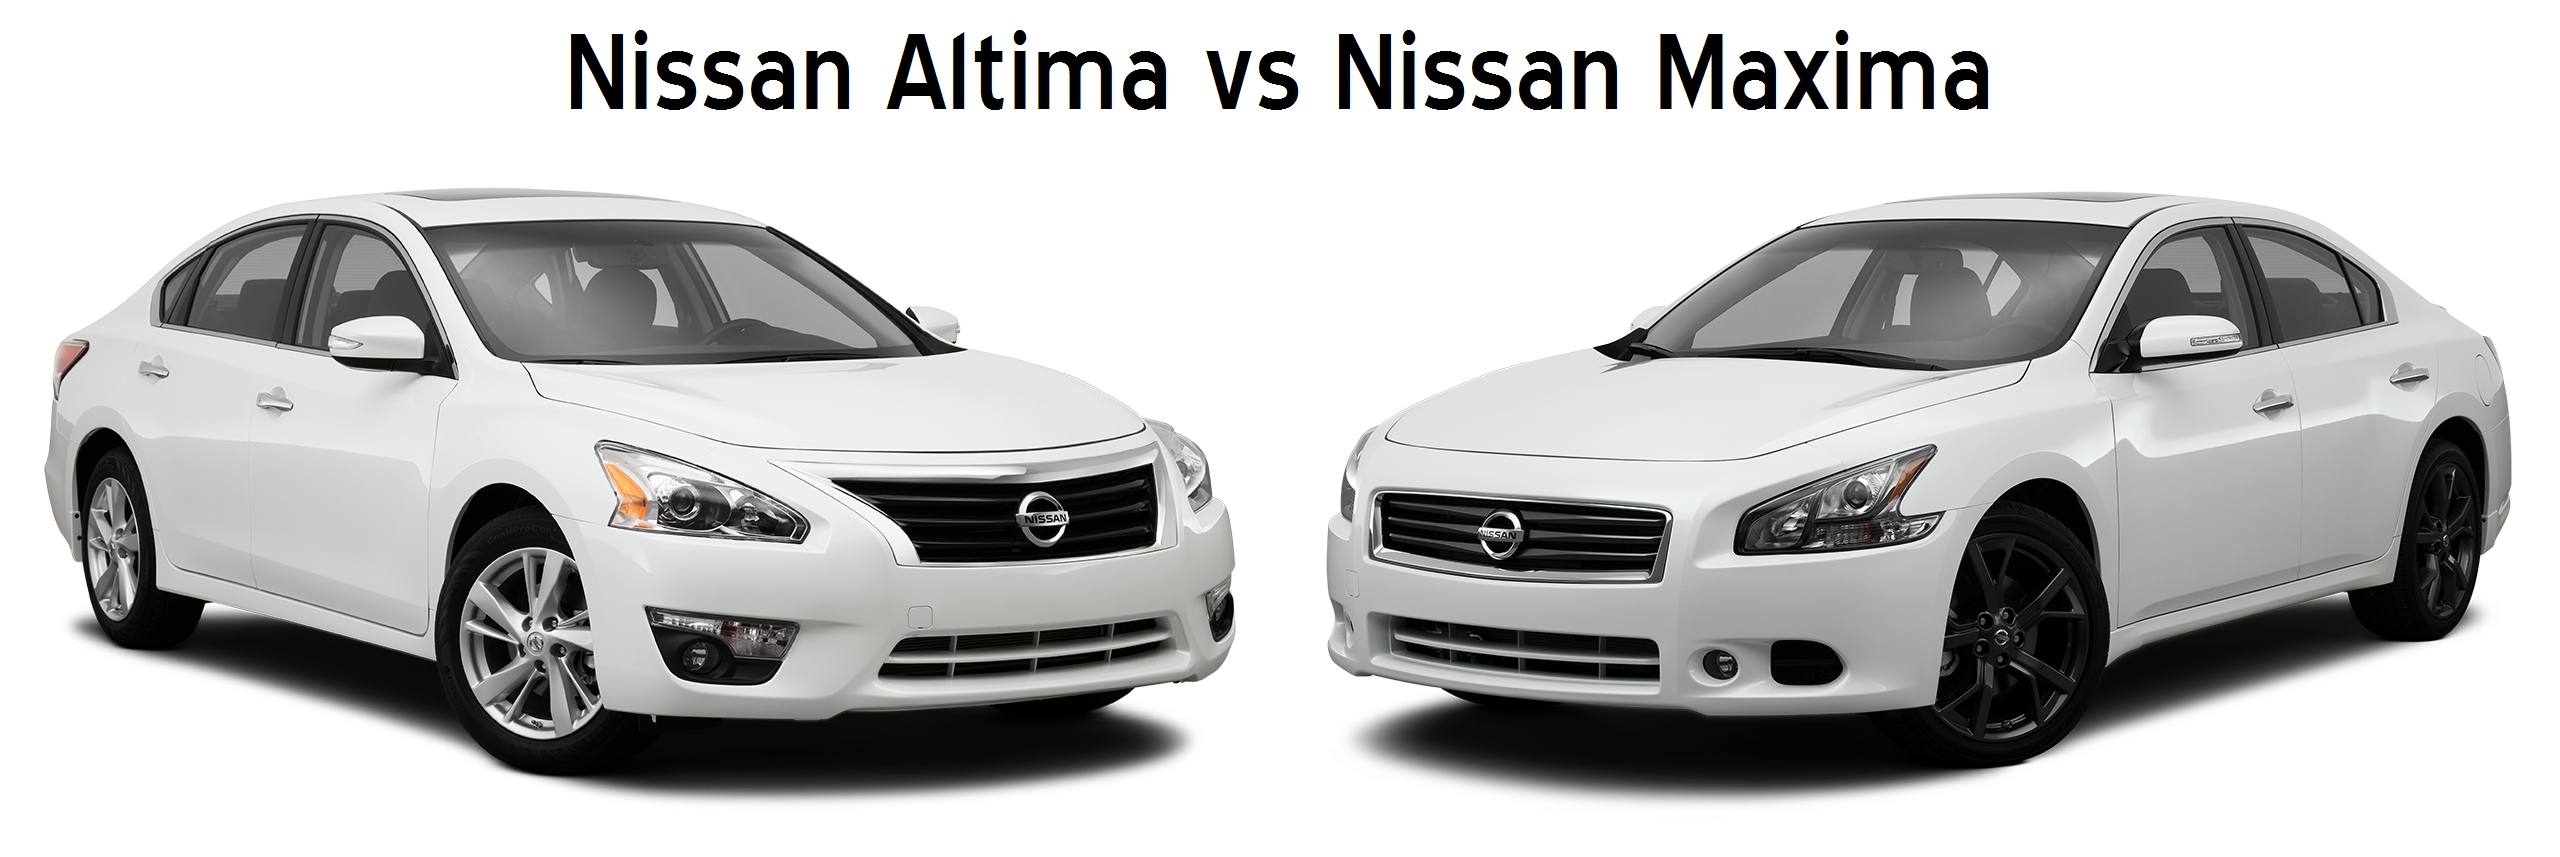 2014 Altima Lease Vs Buy Jack Ingram Nissan